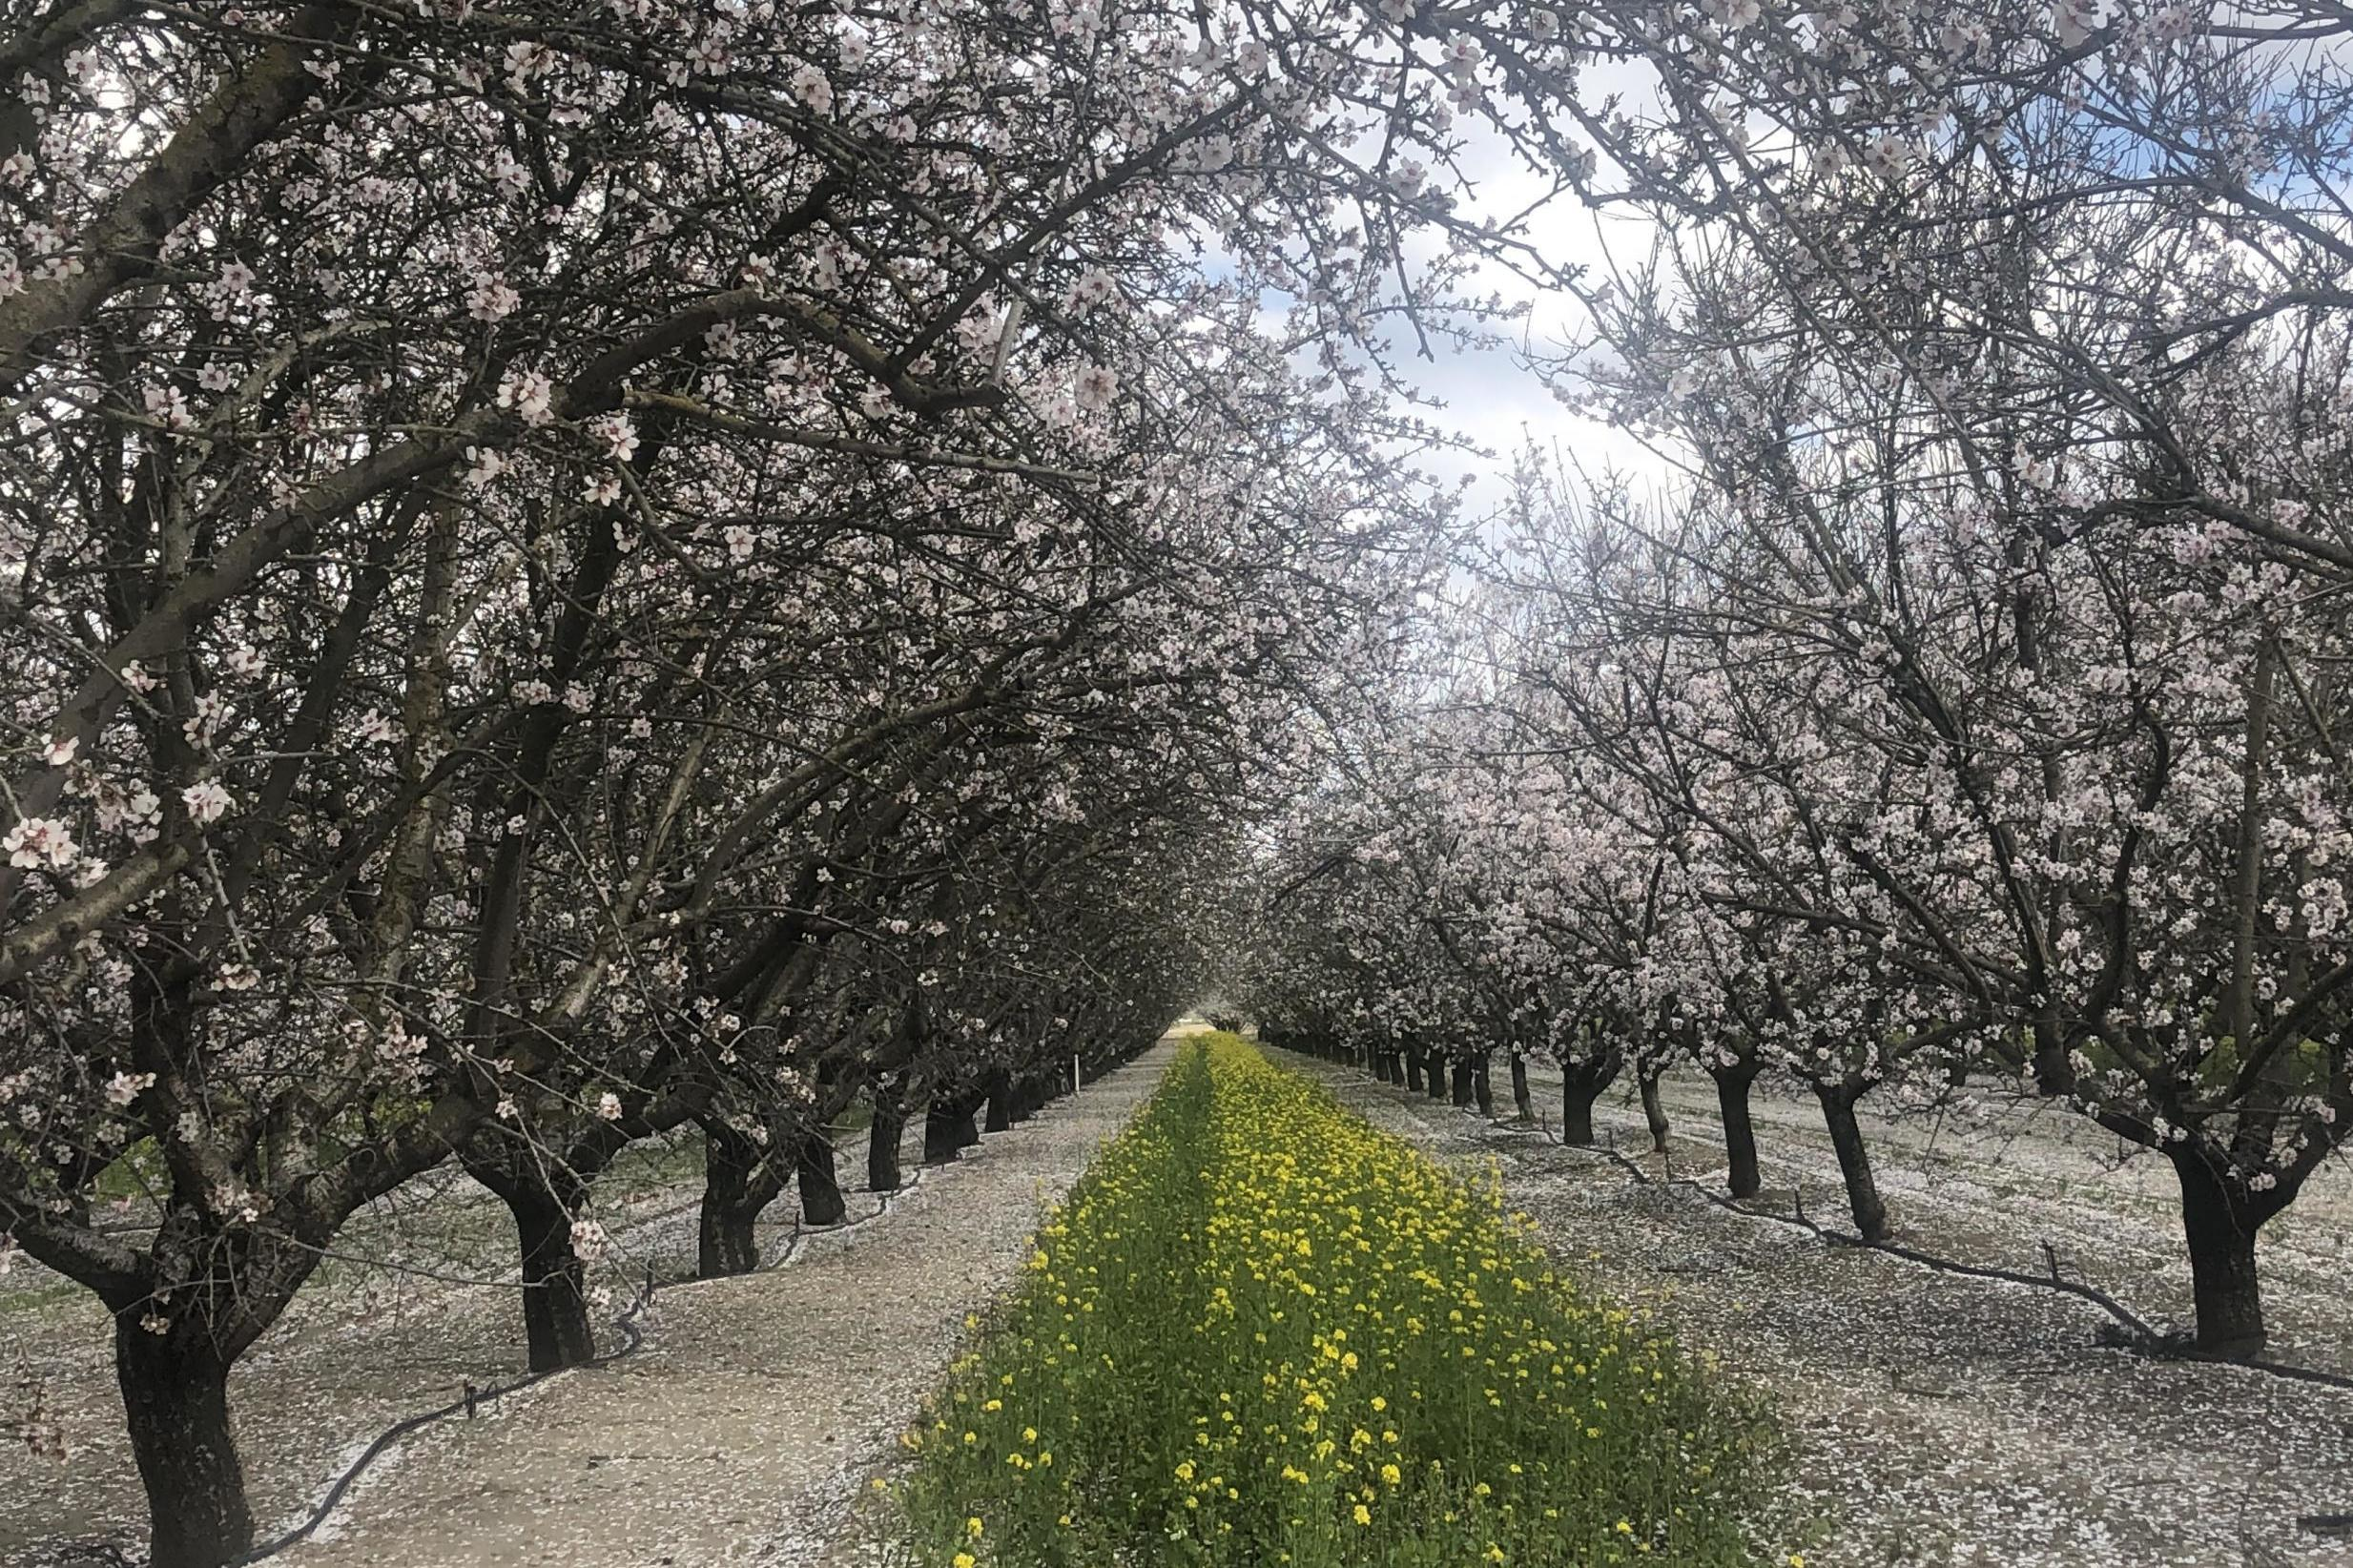 From beer to plastic, why California's almond blooms are more than just a stunning sight